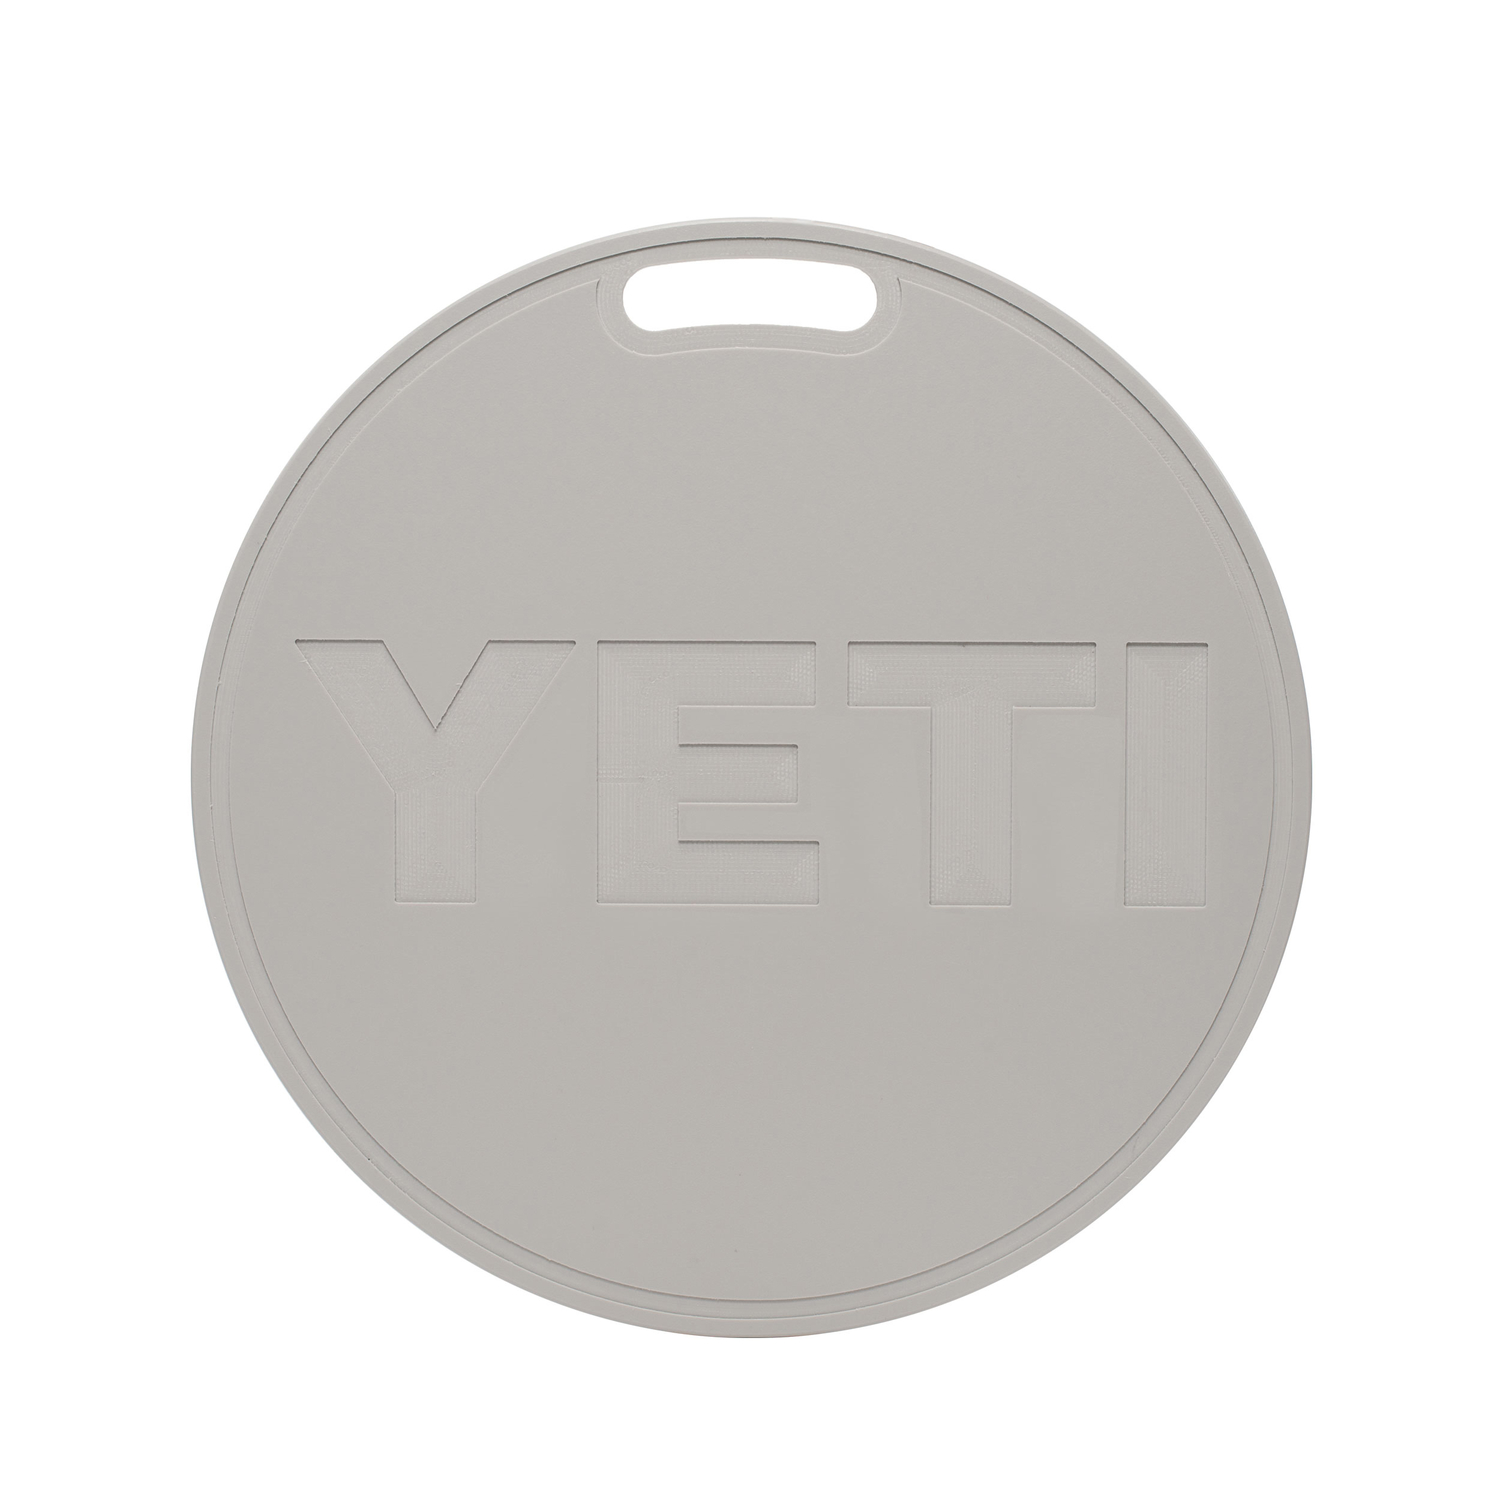 YETI  Tank  Lid  1 each Gray